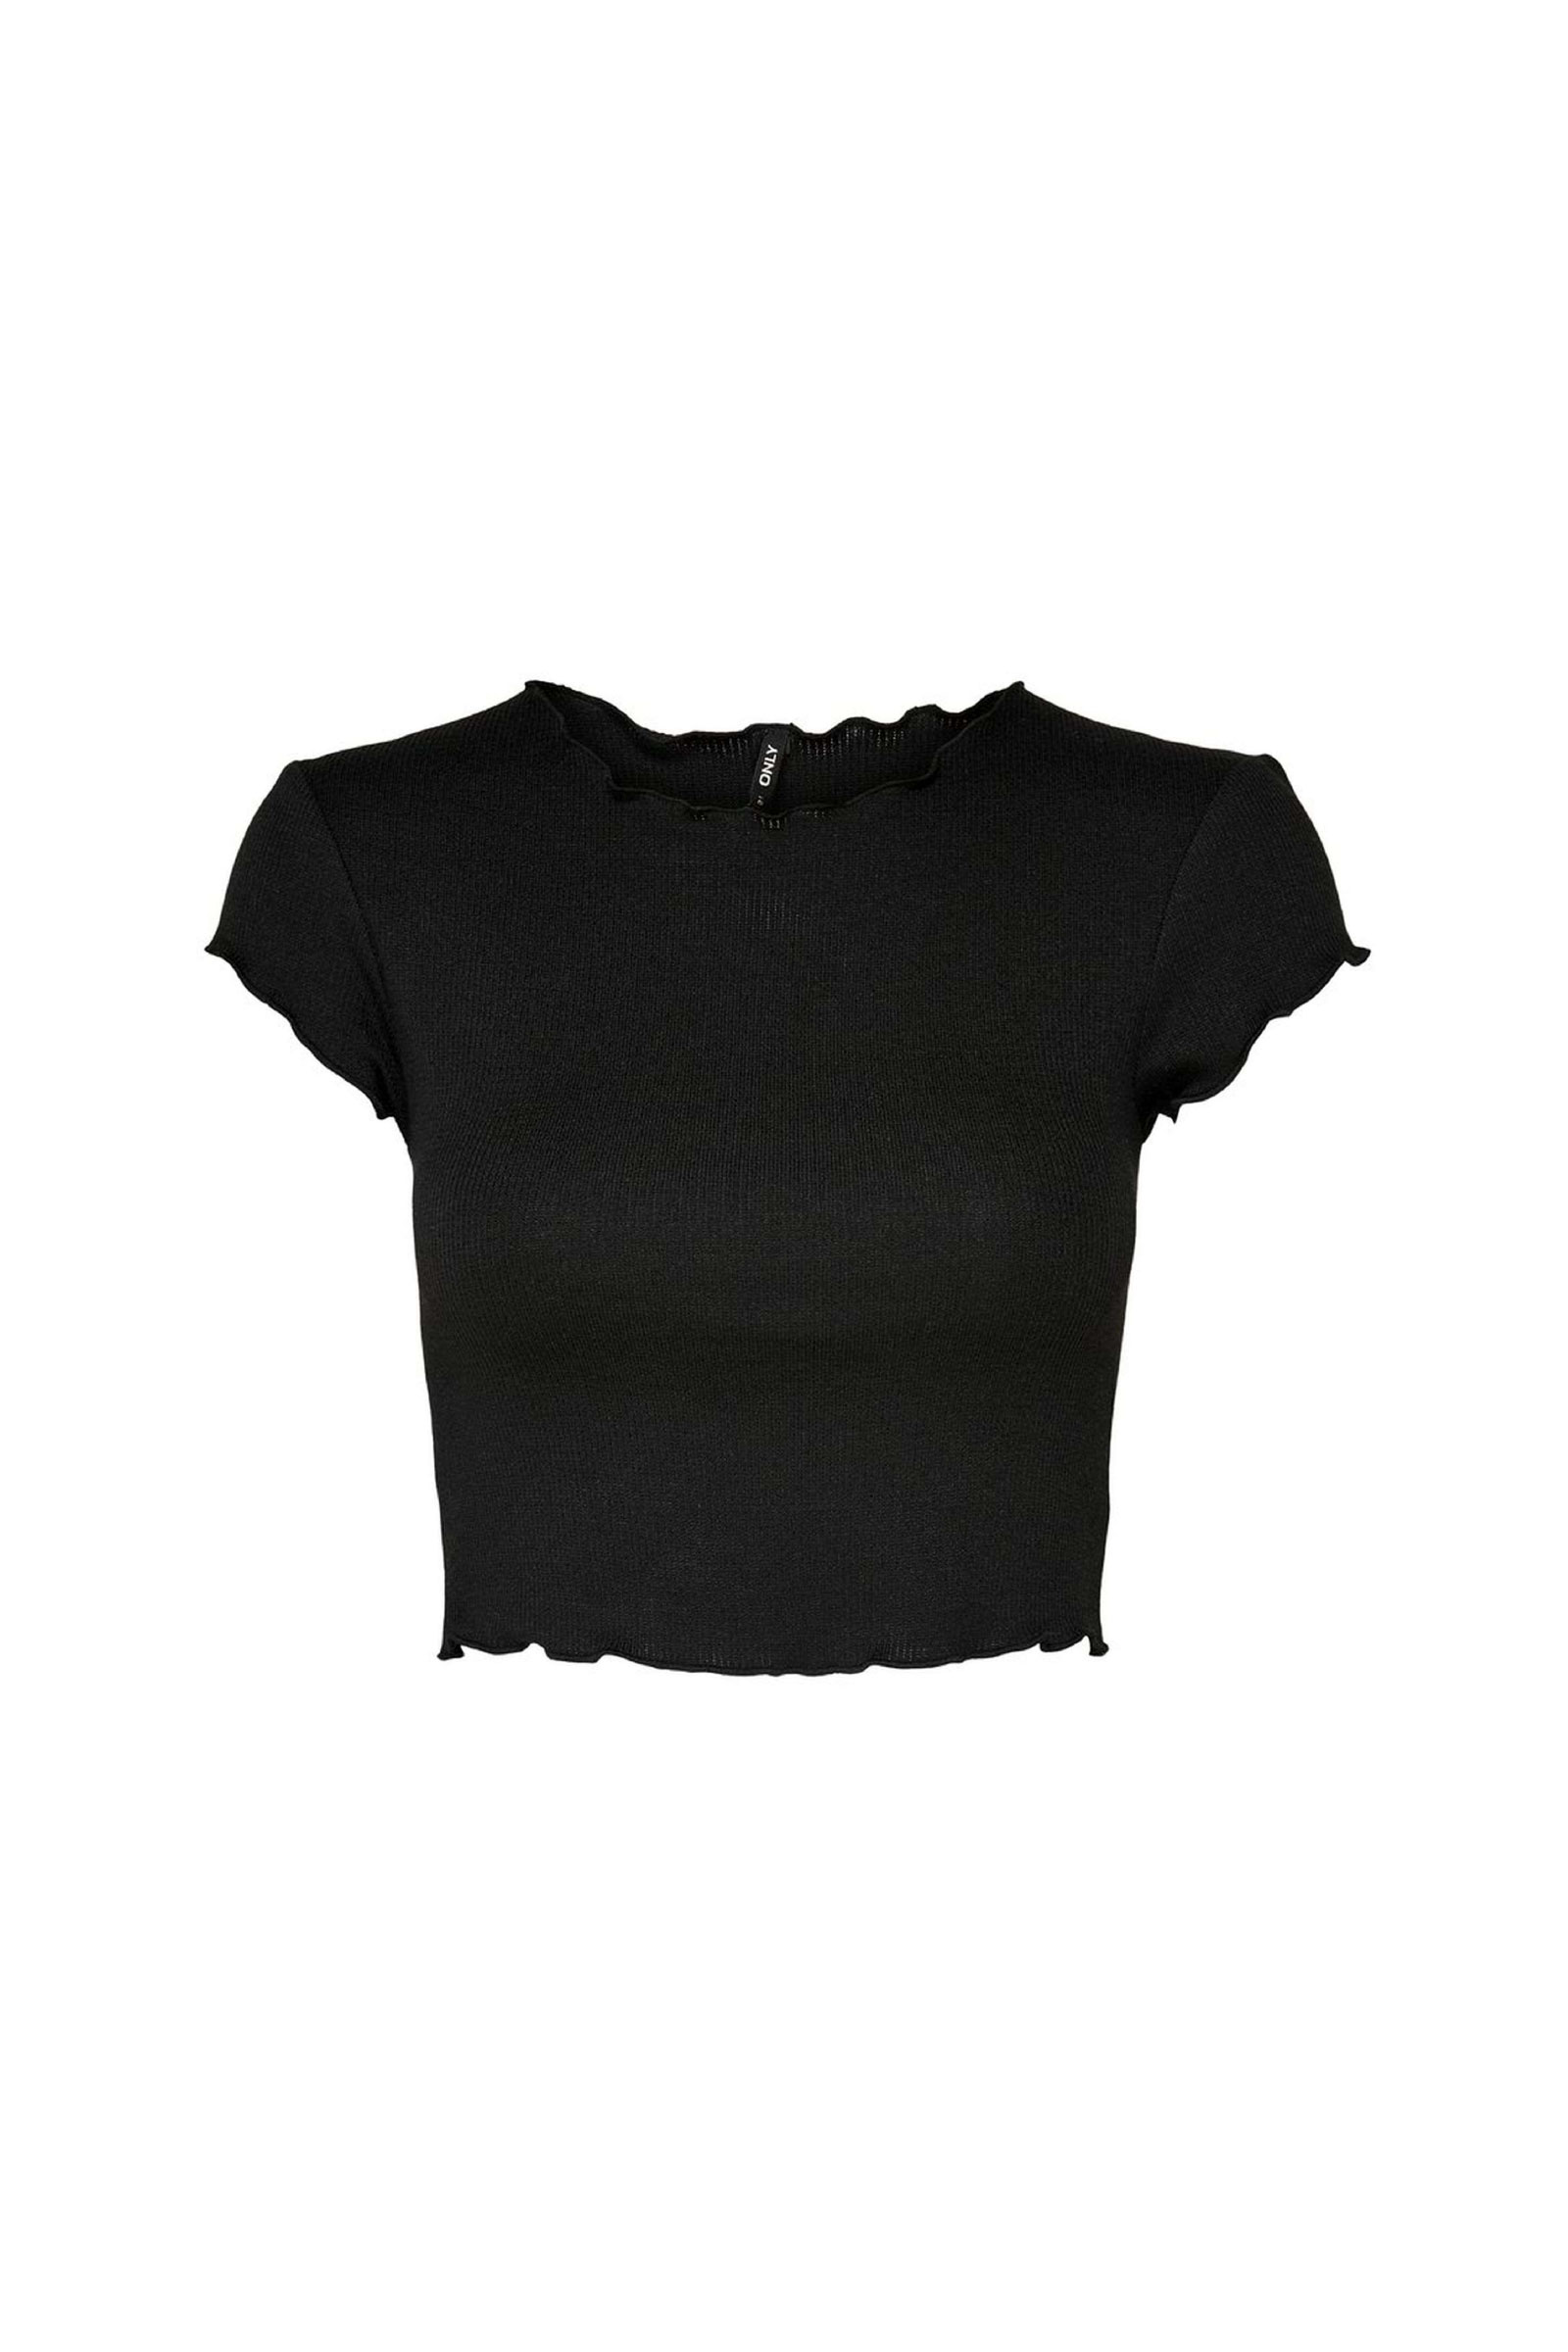 ONLY Top Donna ONLY   Top   15202041Black